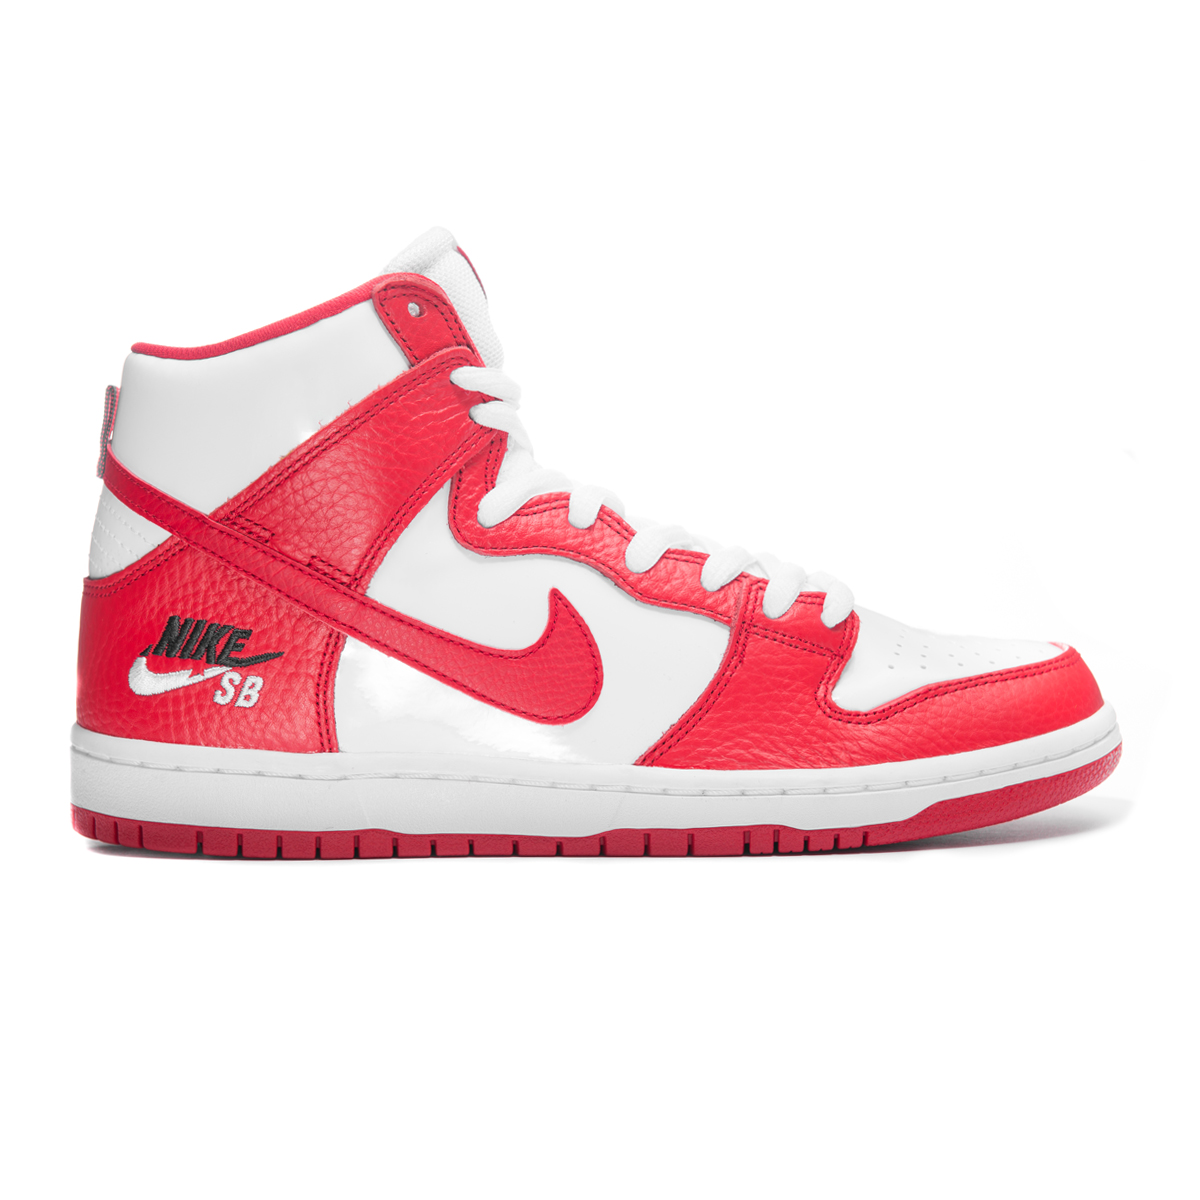 new concept cd641 c9a3f ... Buty Nike SB Zoom Dunk High Pro University Red  White · Zdjęcie  produktu